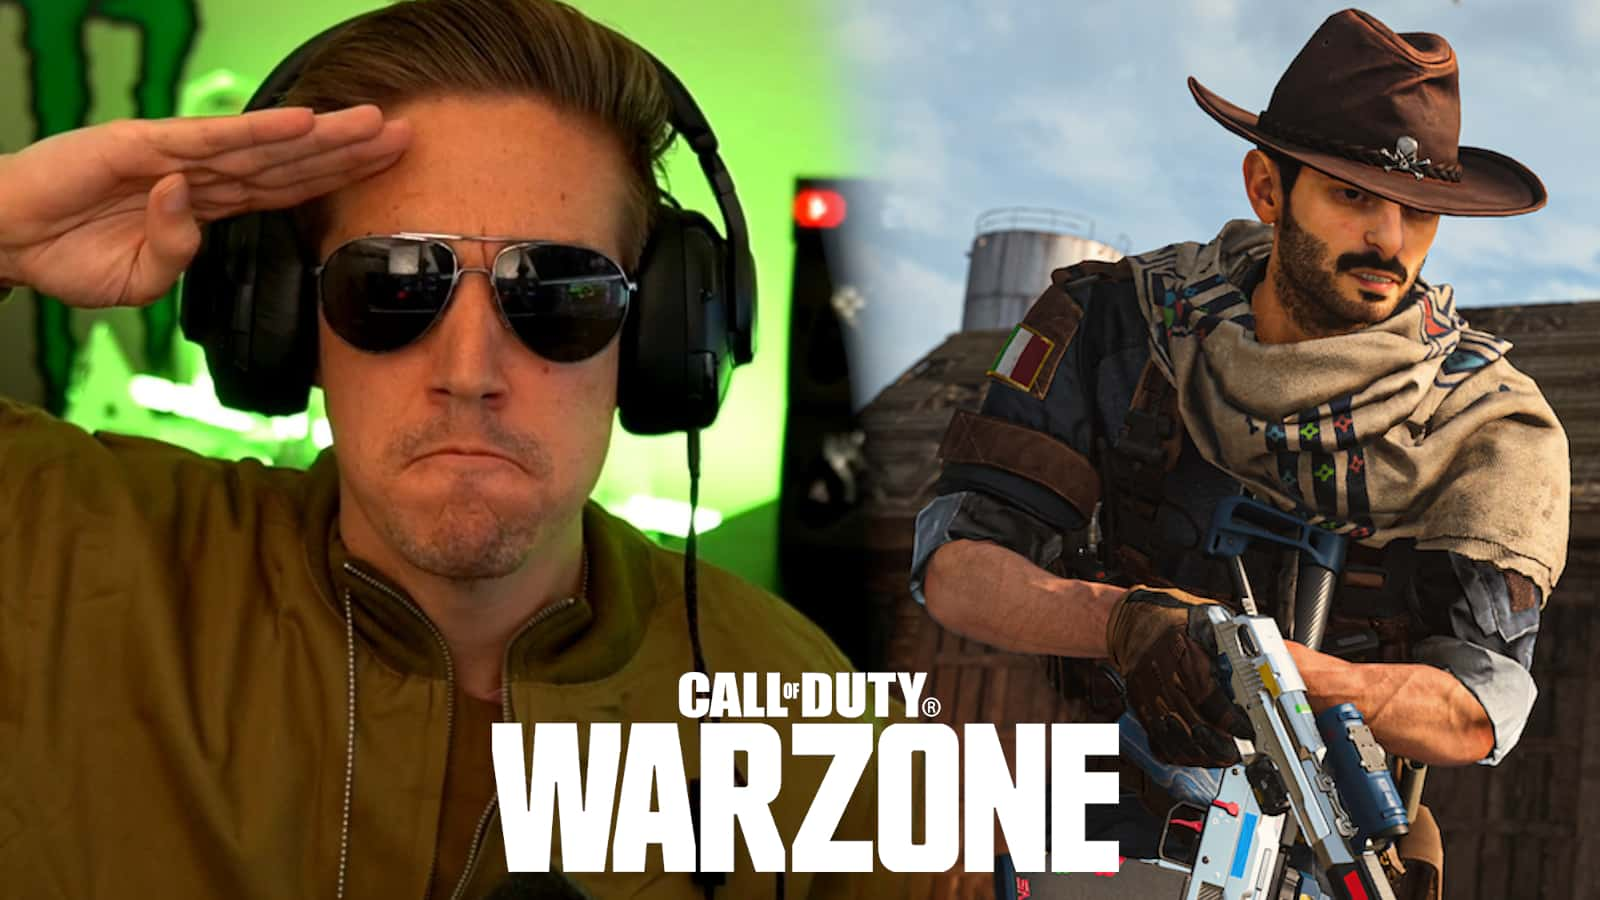 warzone teep villain make players quit game call of duty